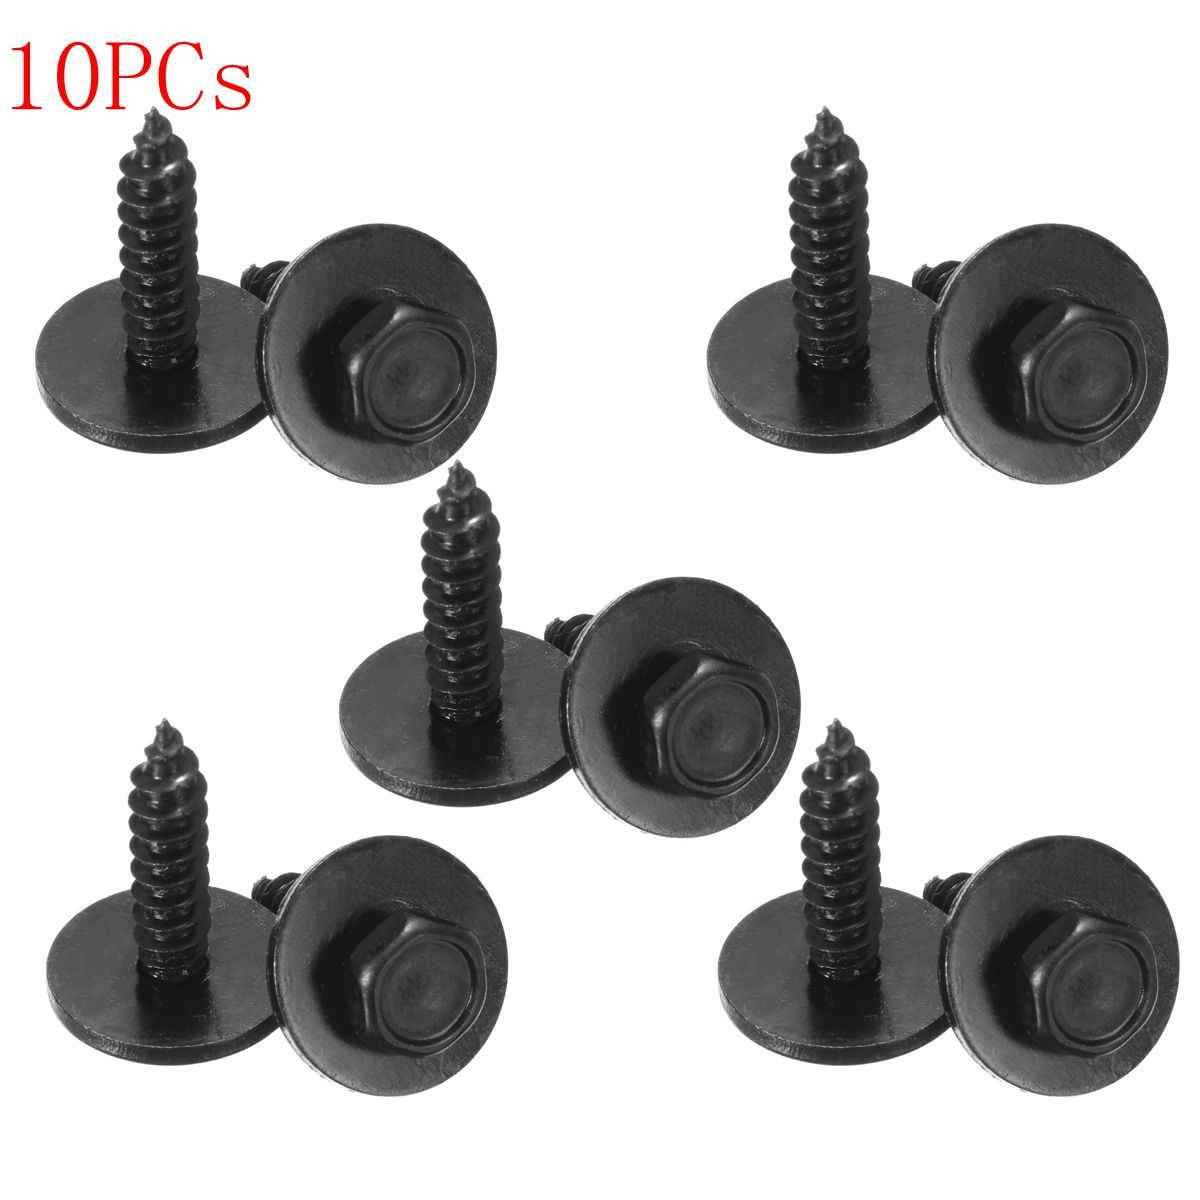 10x Black Tapper Screw Self Tapper Screw and Washer for Bumpers Engine Shields Splash Guard